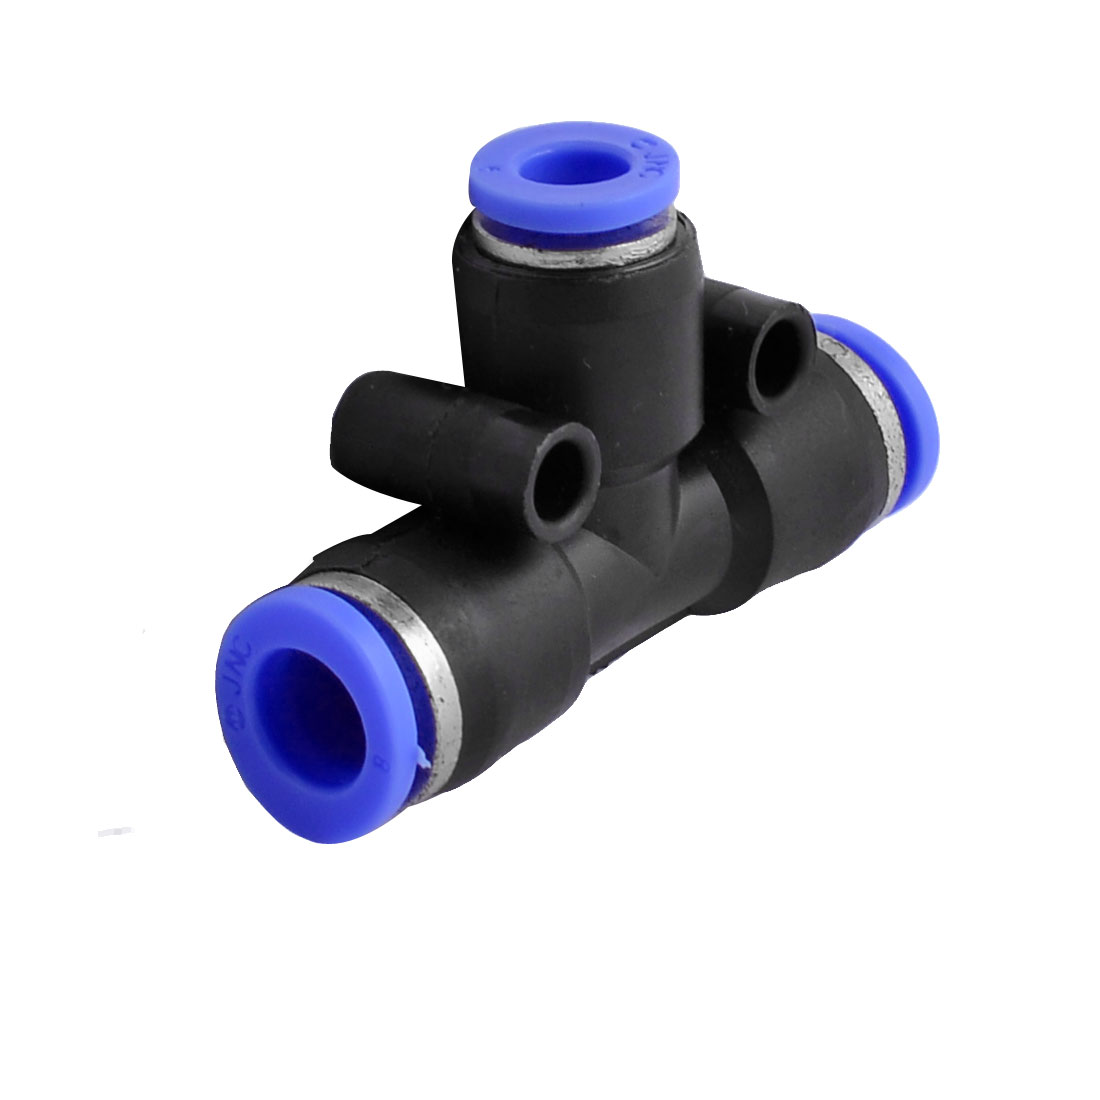 UXCELL Air Pneumatic Tee Adapters 8Mm To 6Mm One Touch Fittings Connector free shipping high quality 10pcs pneumatic 6mm to 6mm one touch end t connector quick fittings pe6